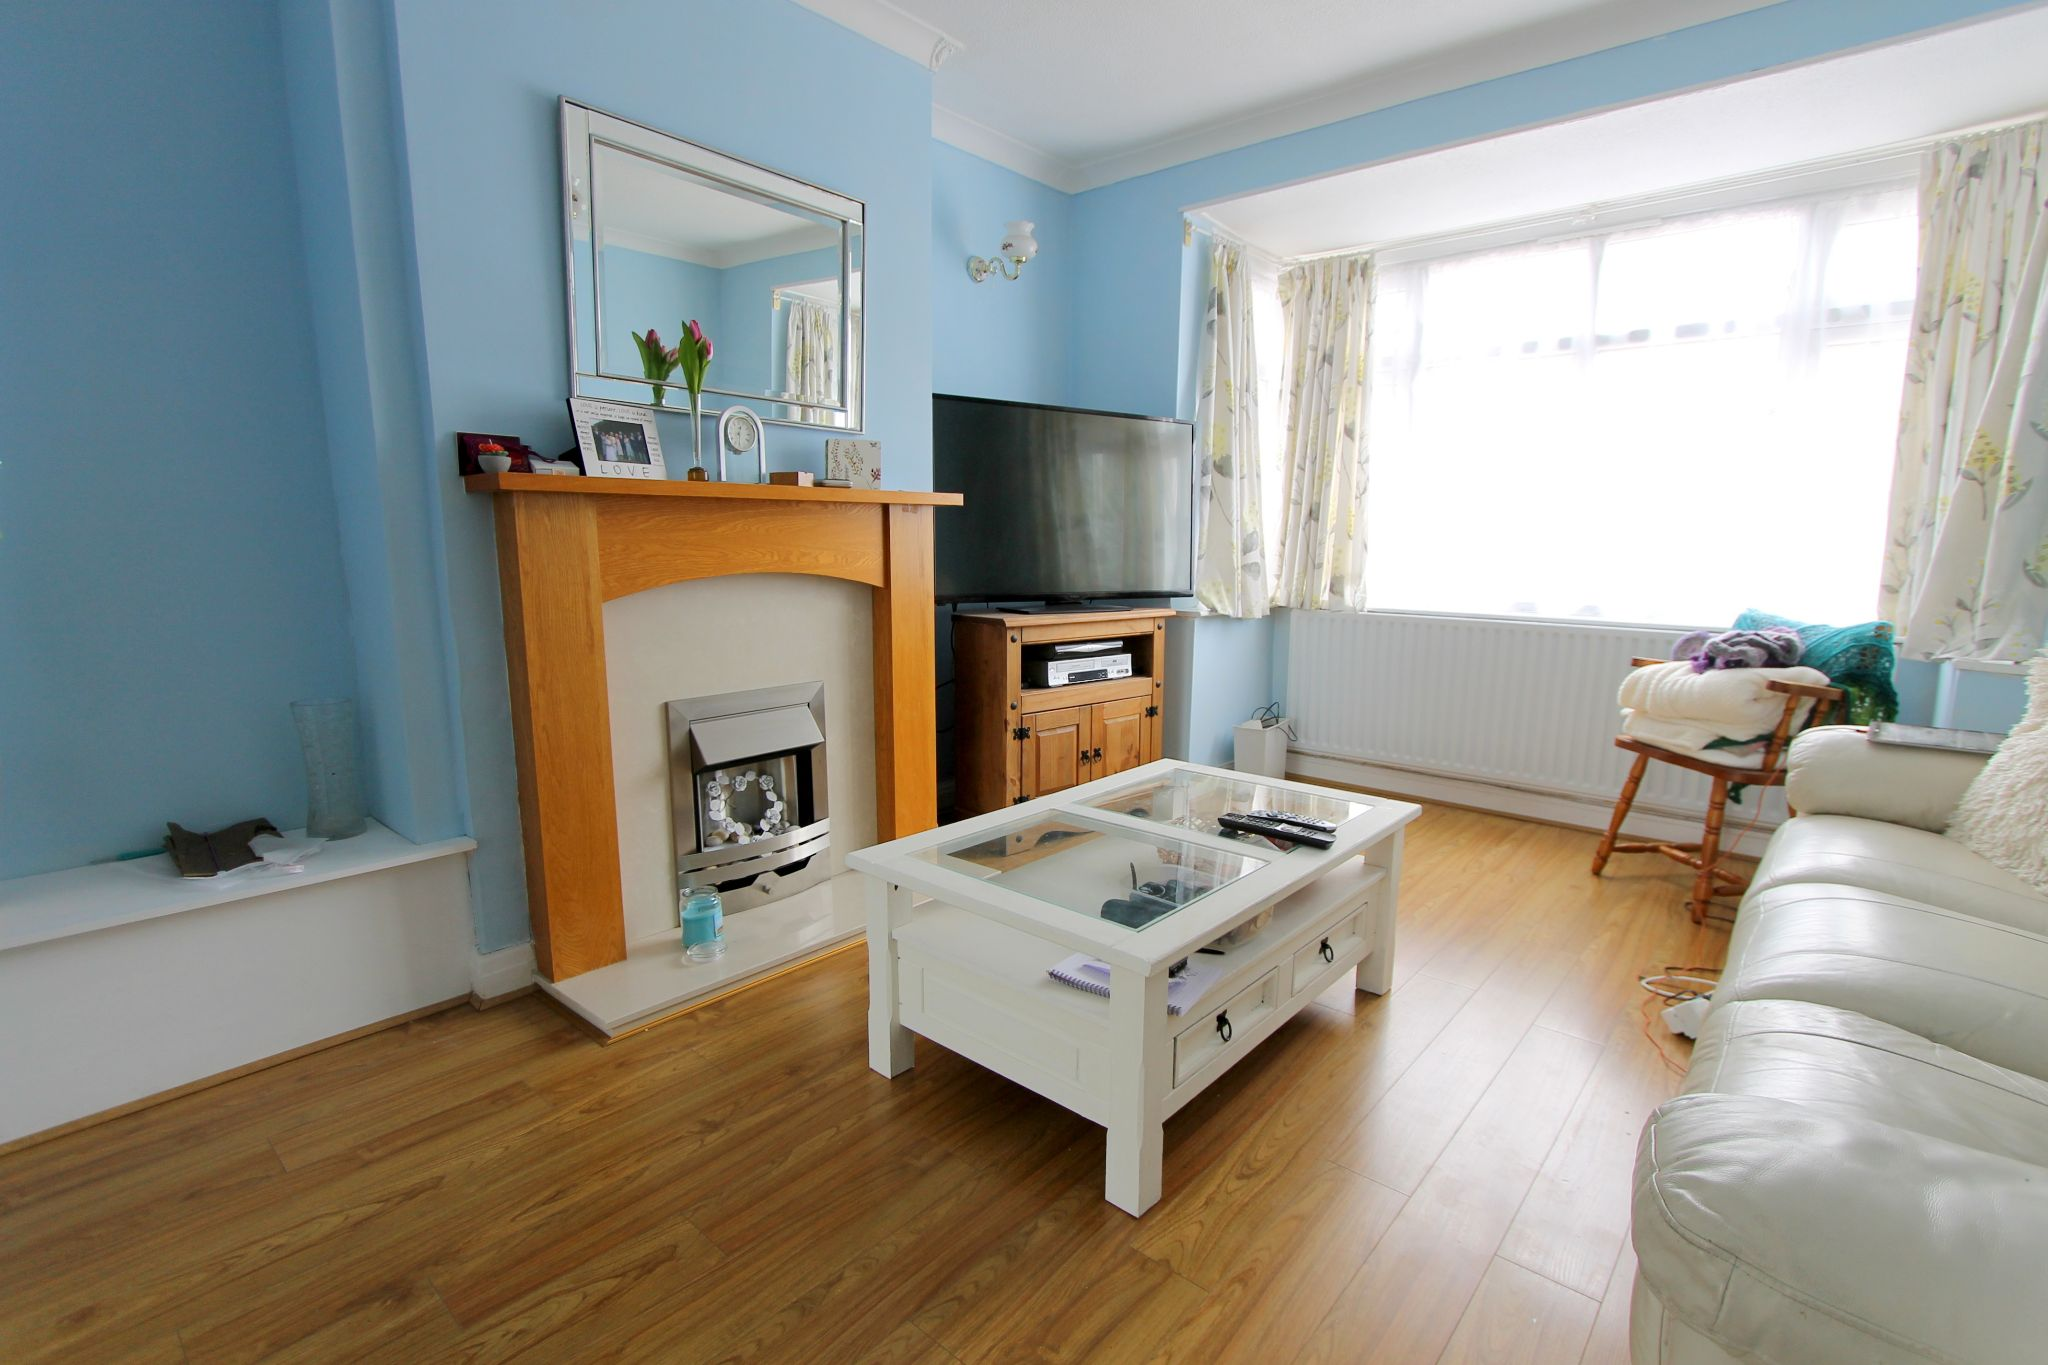 3 bedroom mid terraced house To Let in Sutton - Photograph 2.